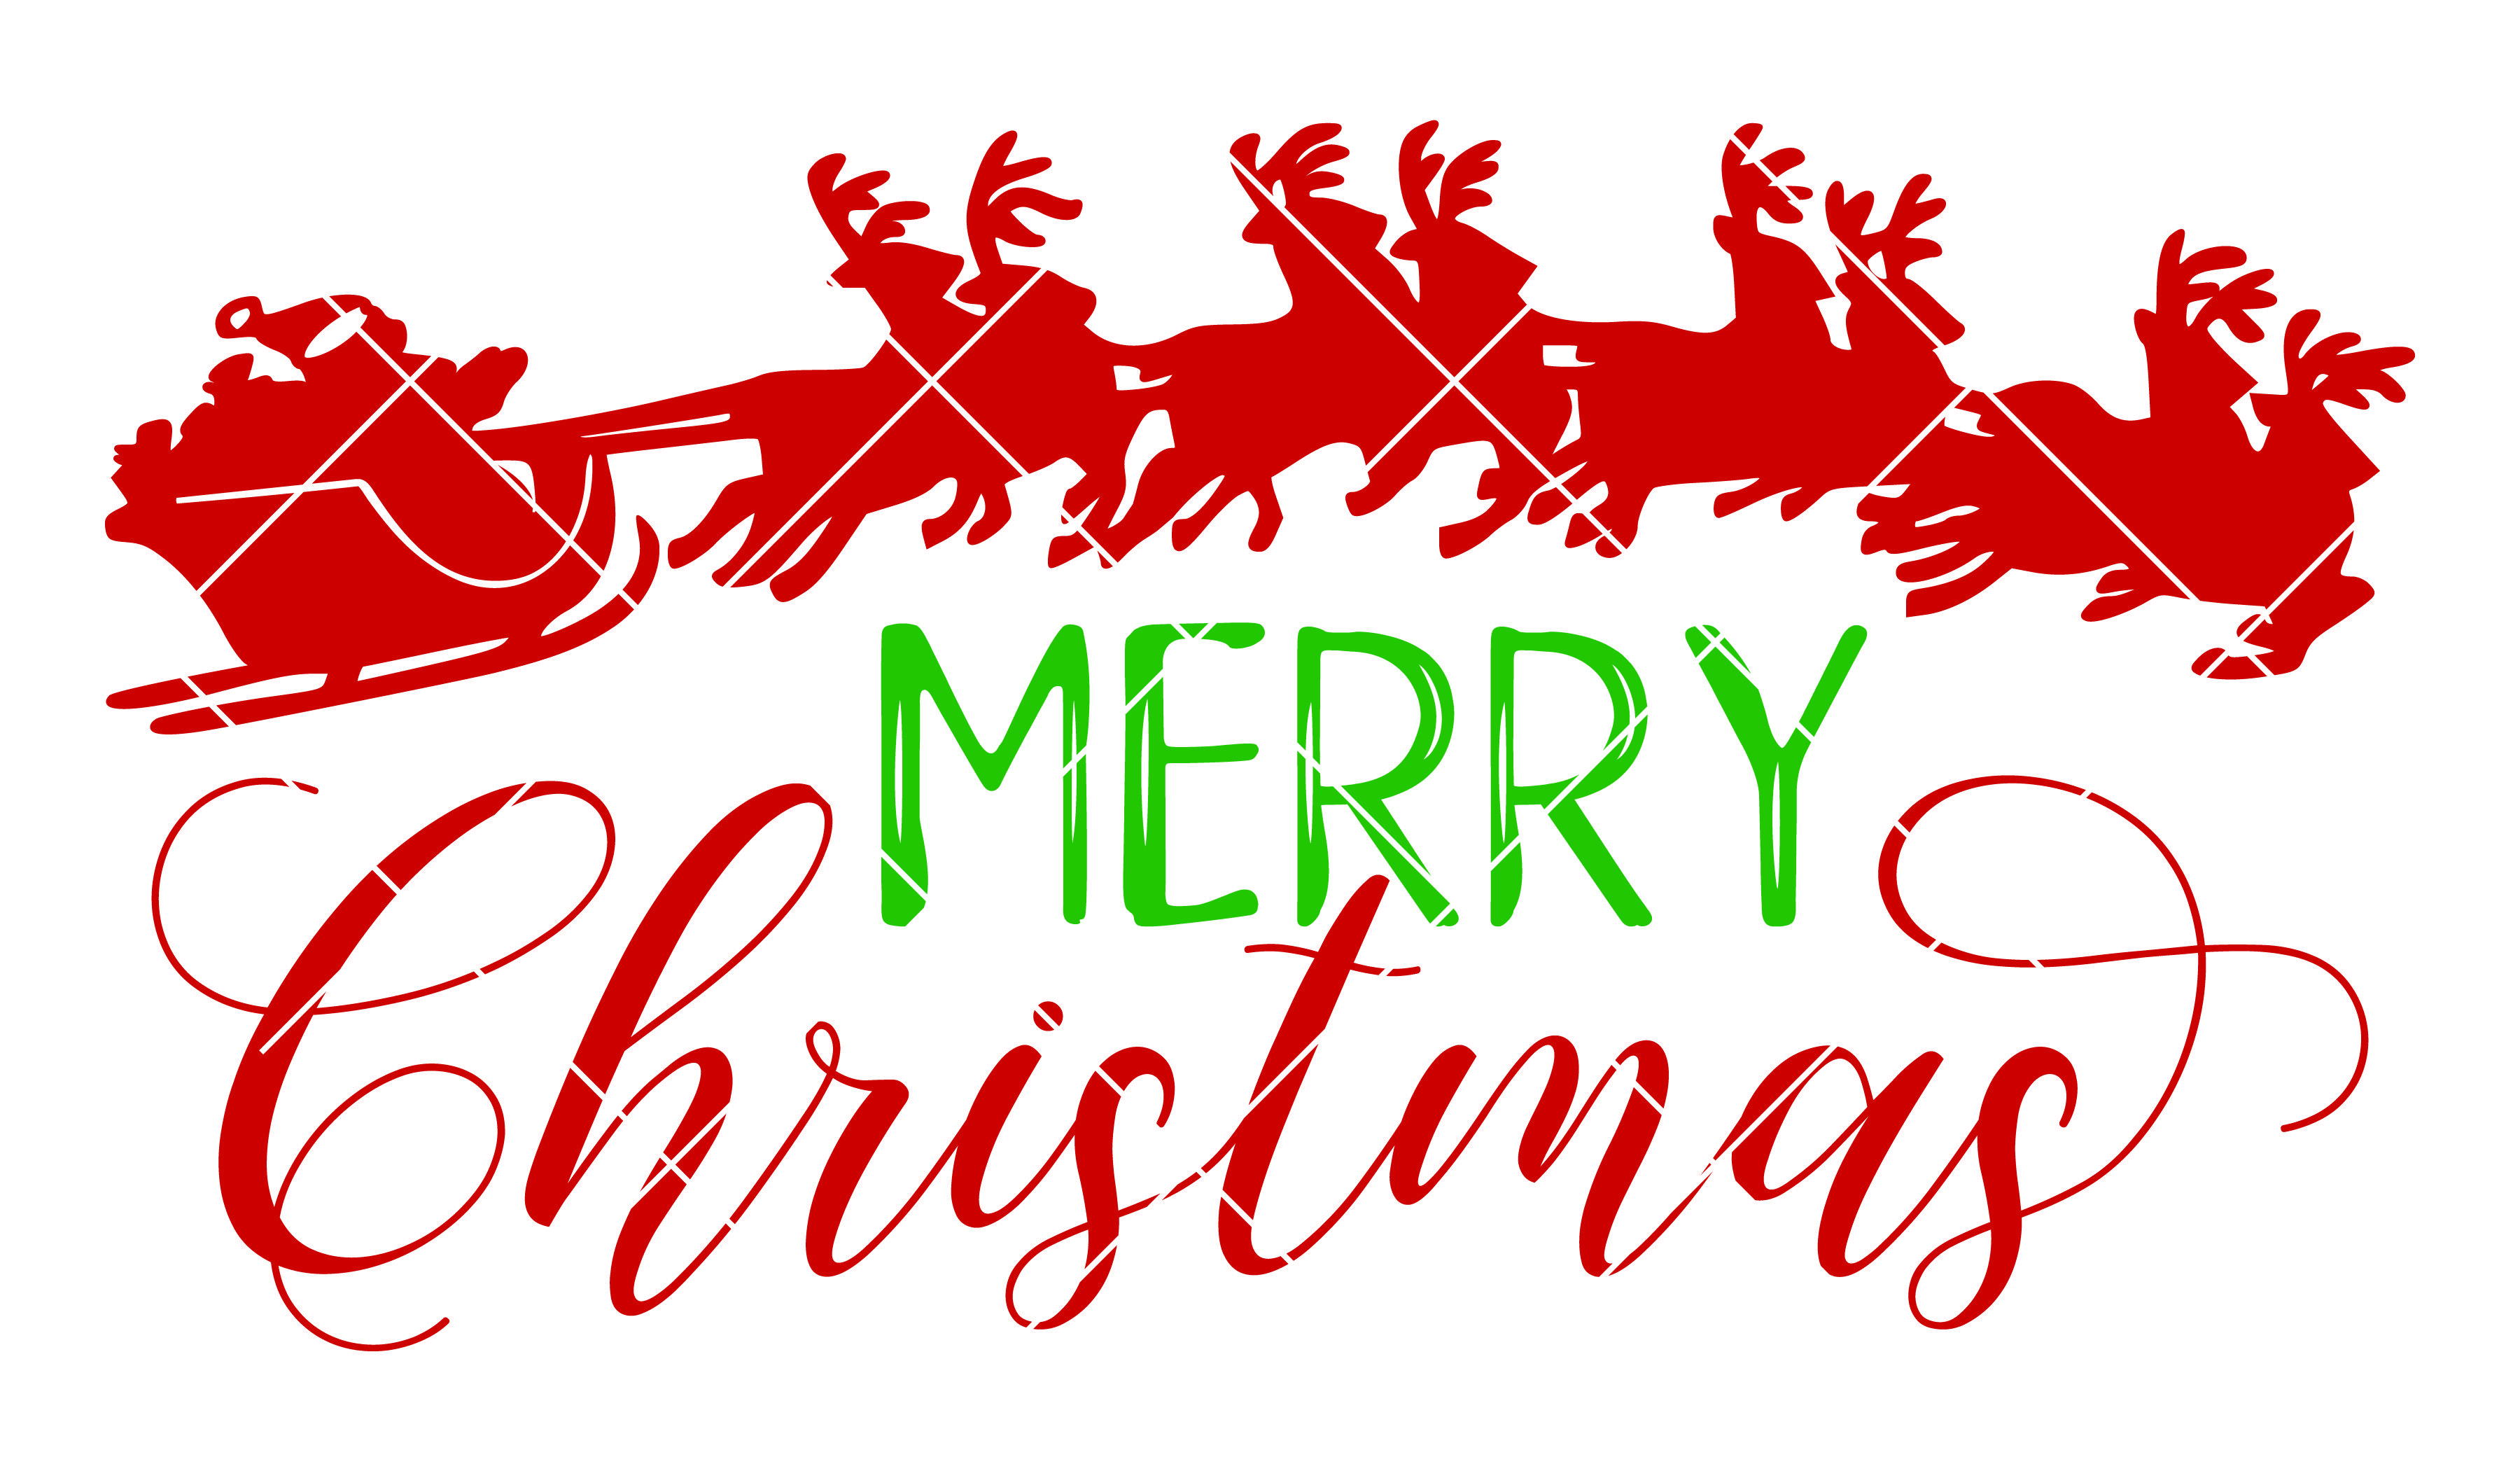 merry christmas svg free #395, Download drawings